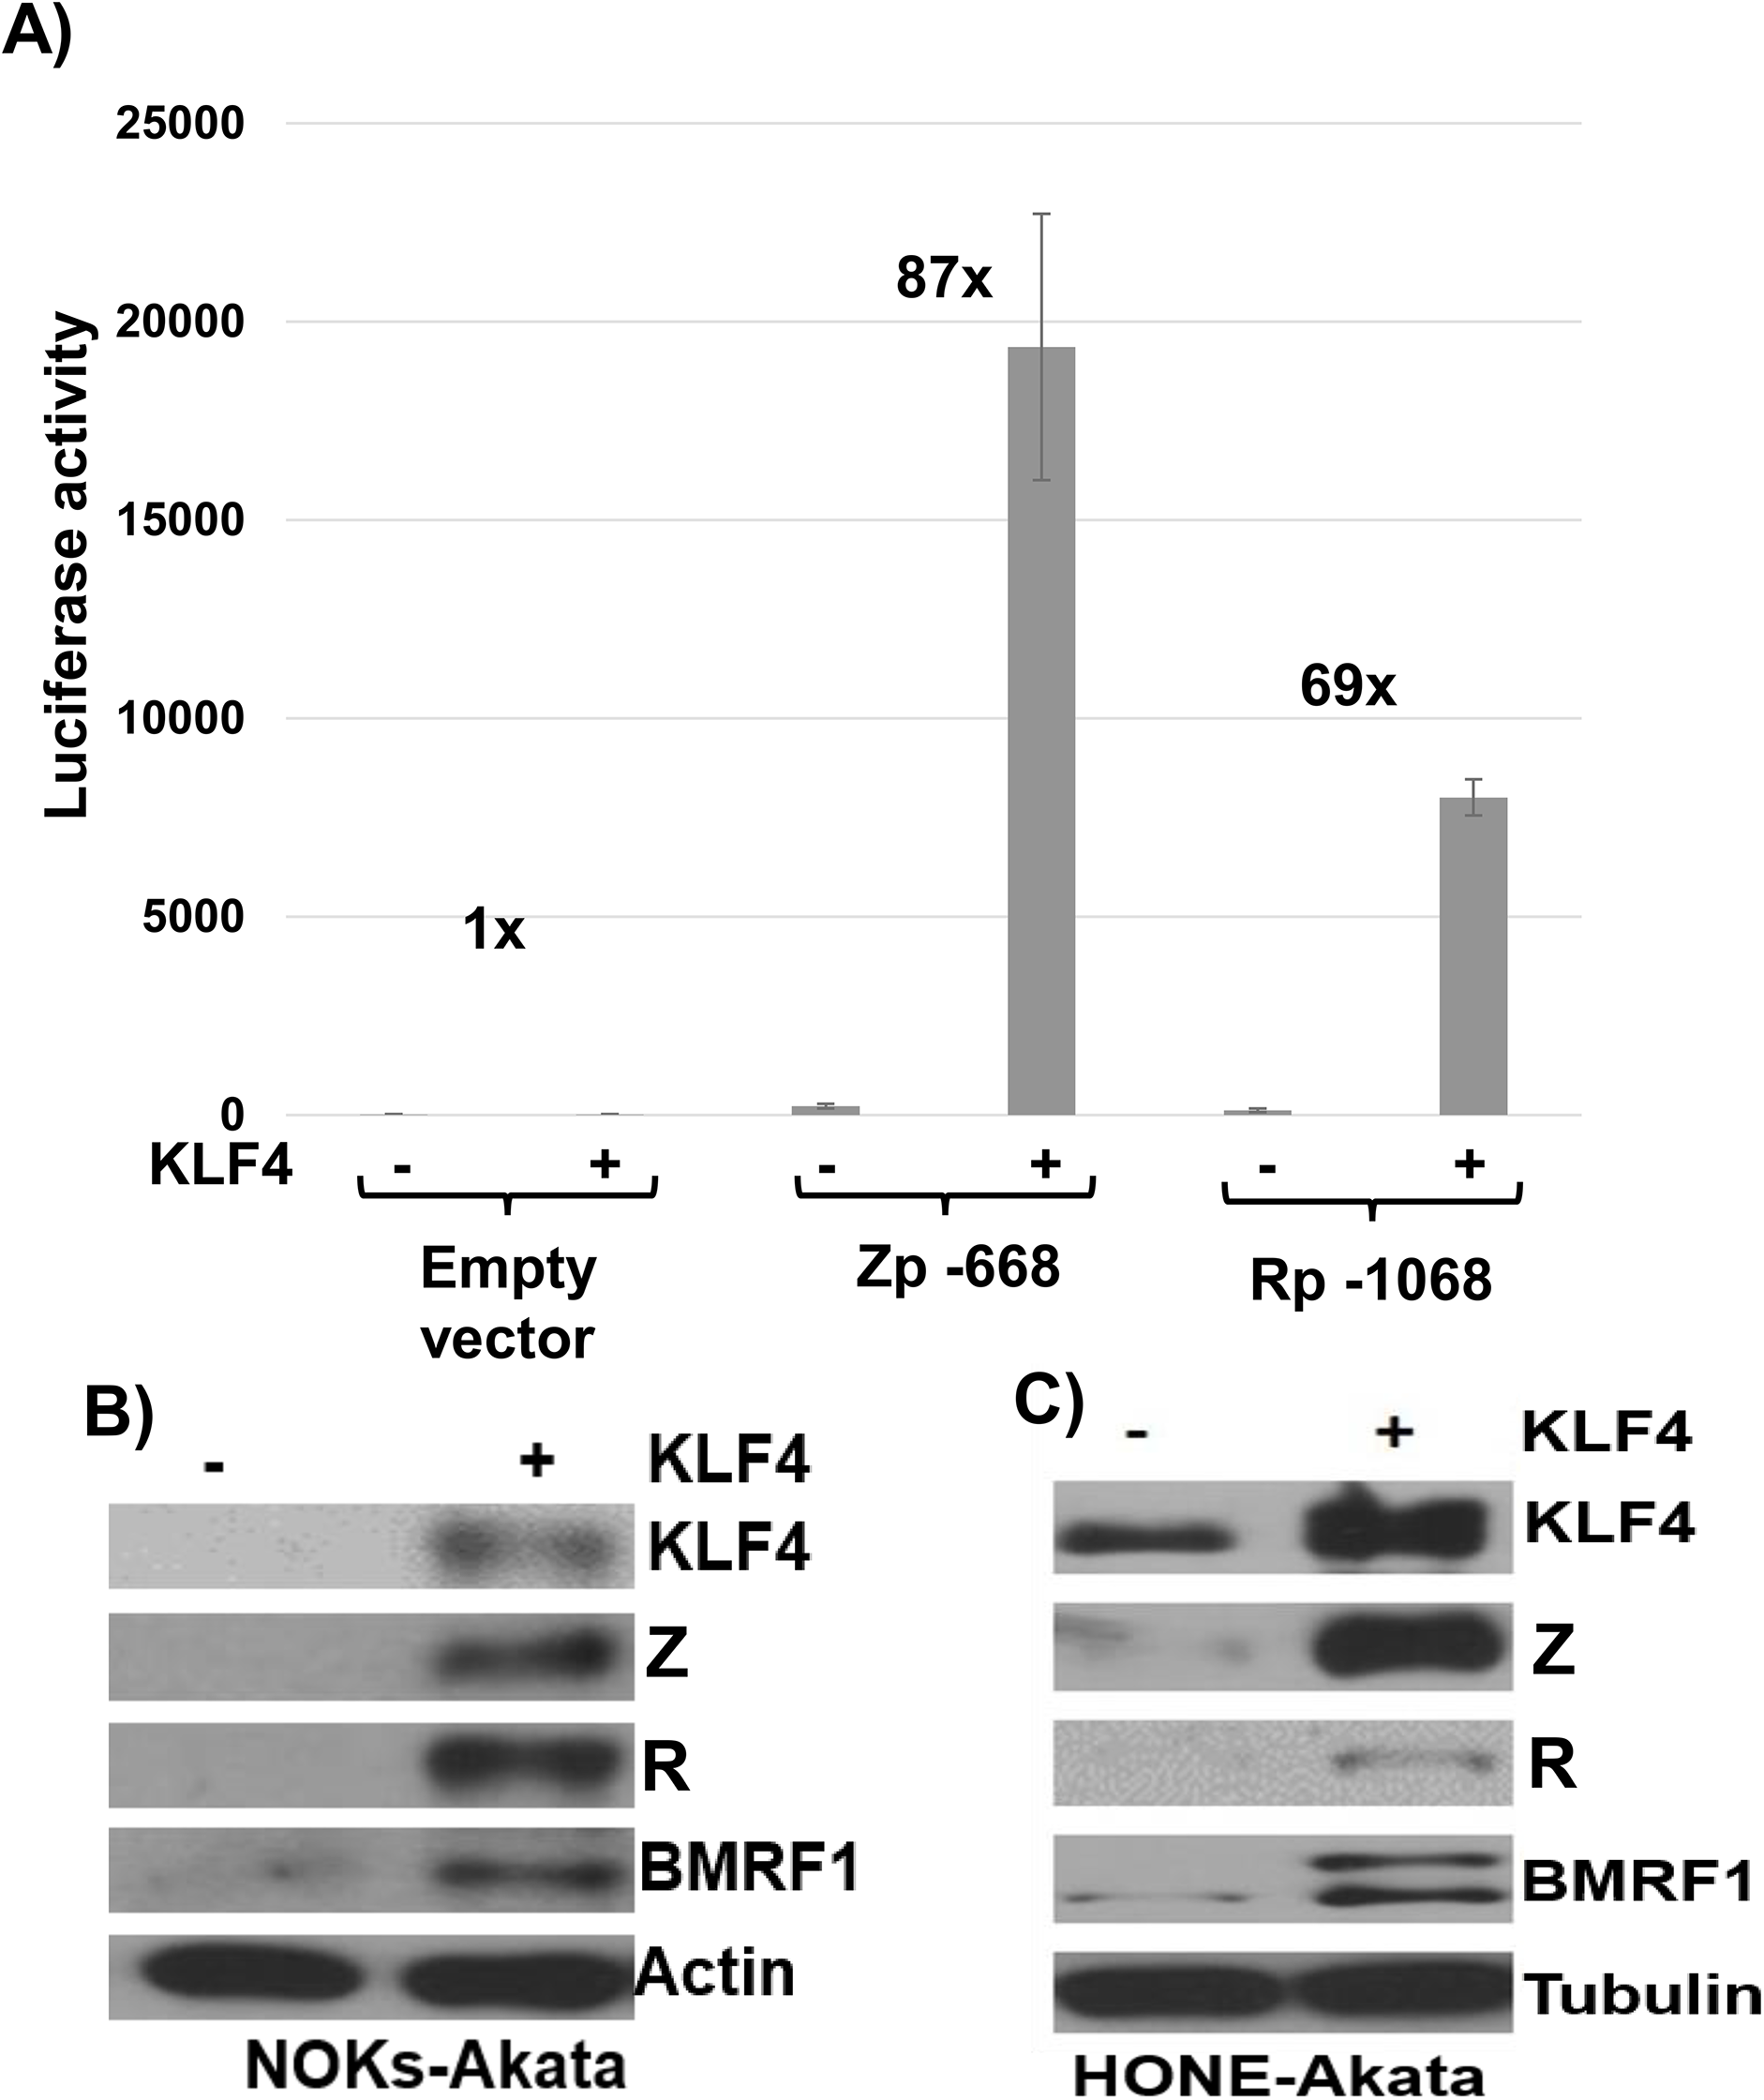 KLF4 activates both the Zp and Rp IE EBV promoters in reporter gene assays and induces lytic EBV reactivation when over-expressed in latently infected epithelial cells.